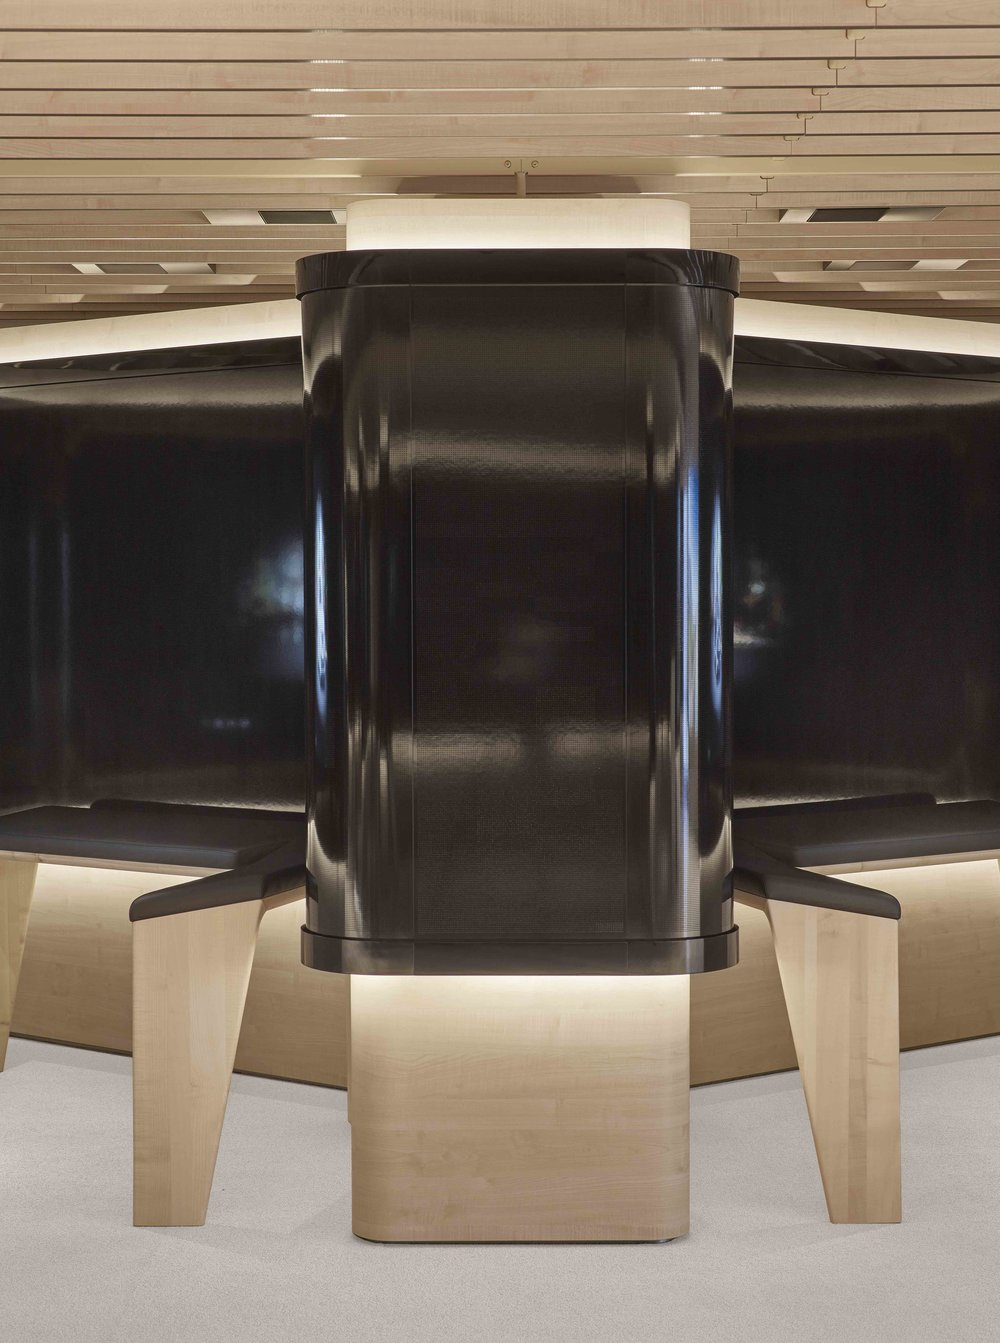 bmw-product-information-center_coorporate-interior-design_coordination-berlin_11.jpg